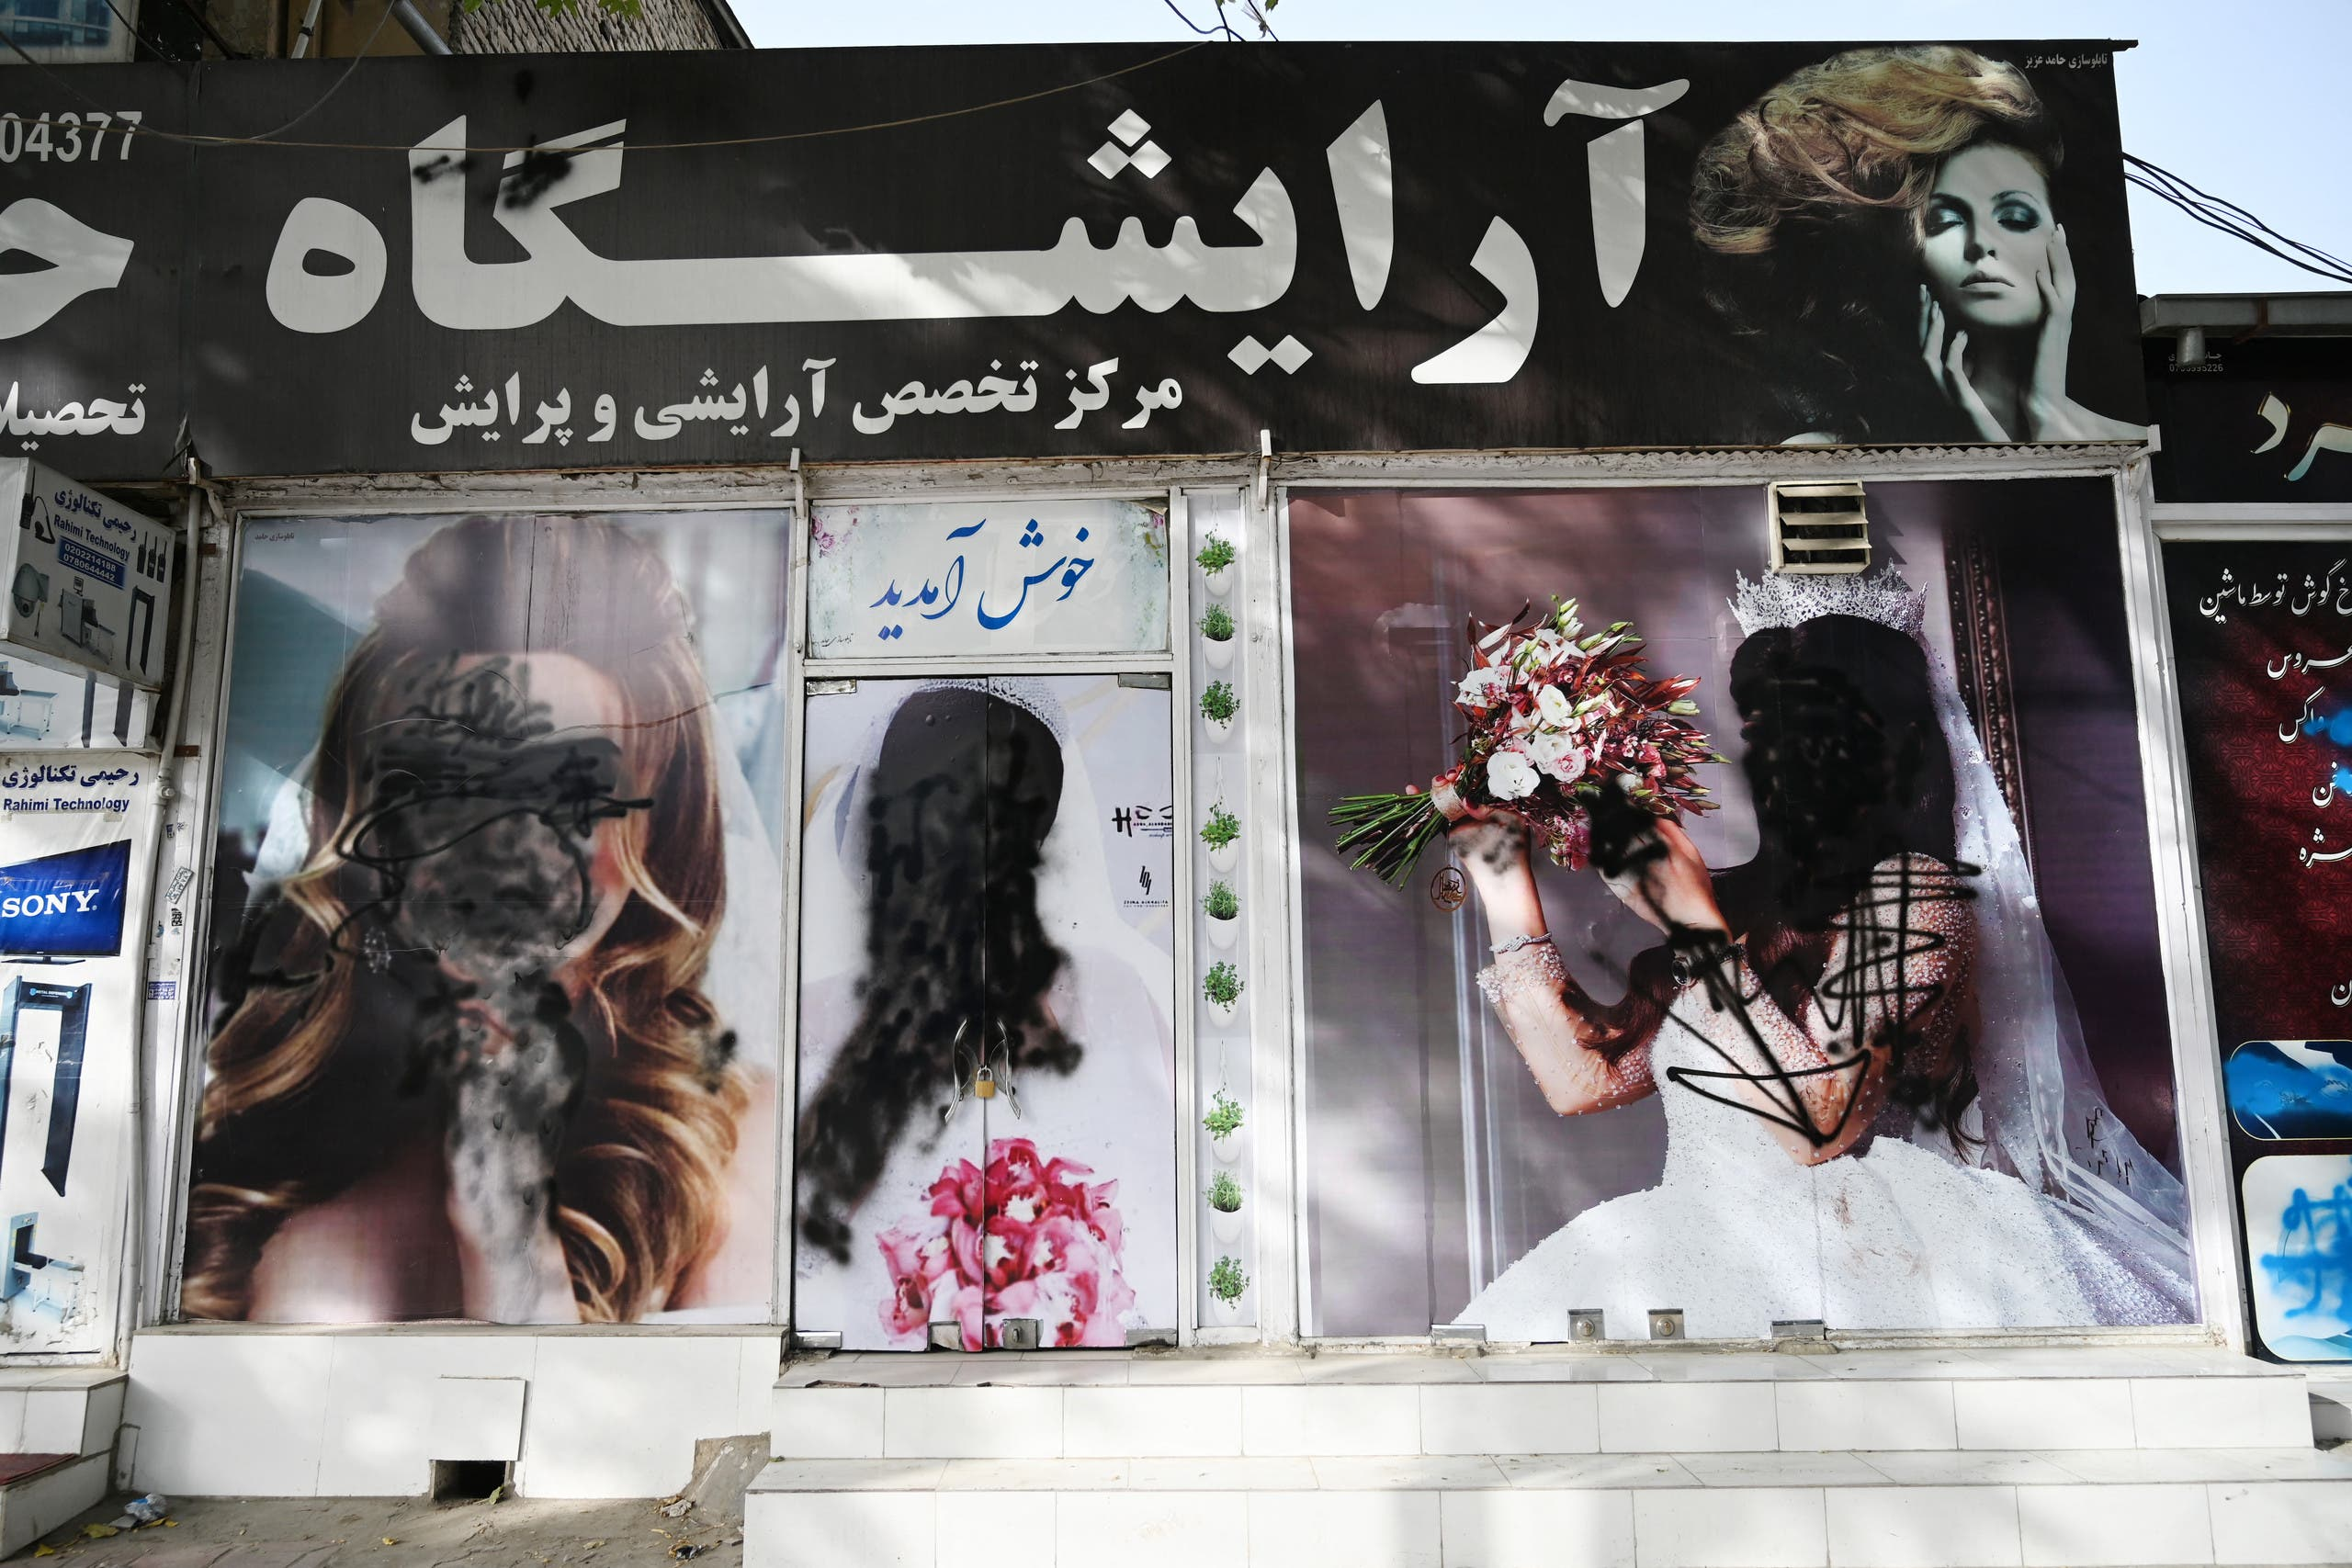 The facade of a beauty salon is pictured with images of women defaced using spray paint in Shar-e-Naw in Kabul on August 18, 2021. (AFP)